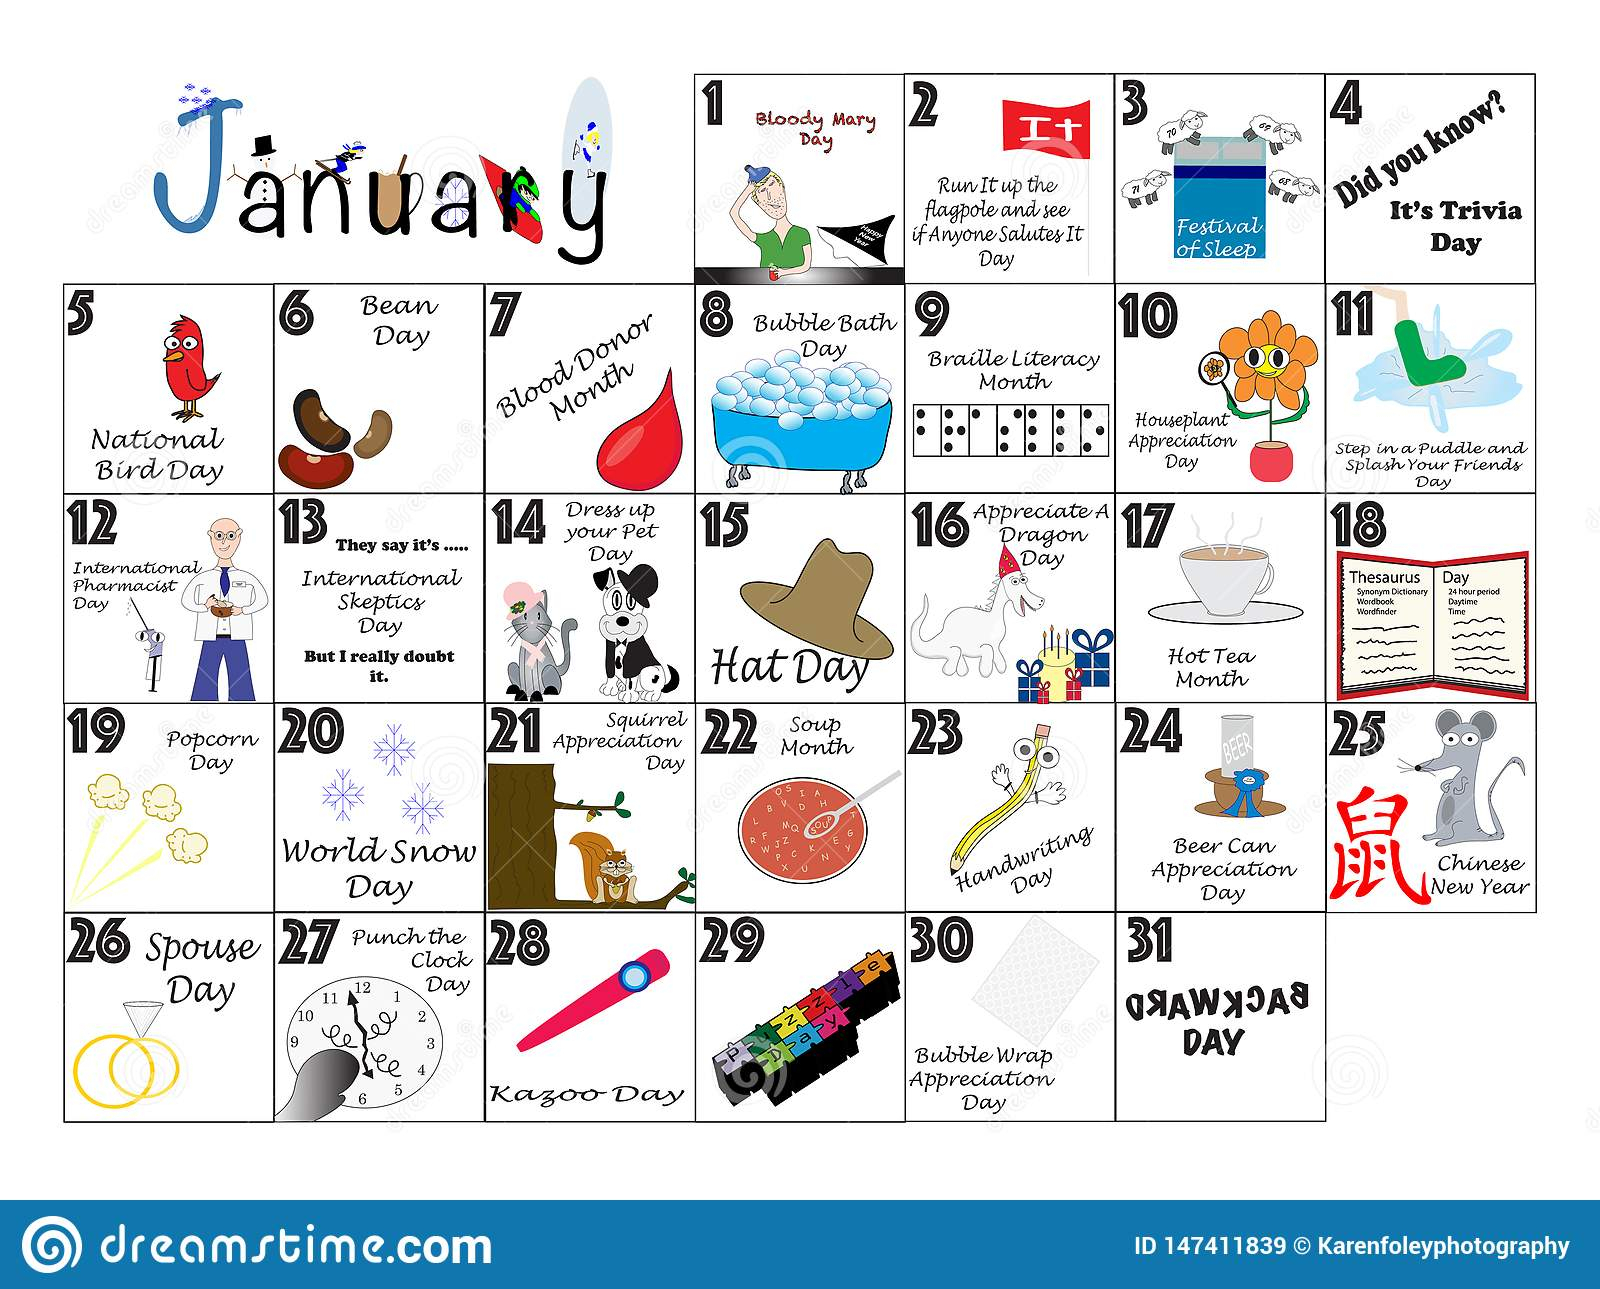 January 2020 Quirky Holidays And Unusual Celebrations